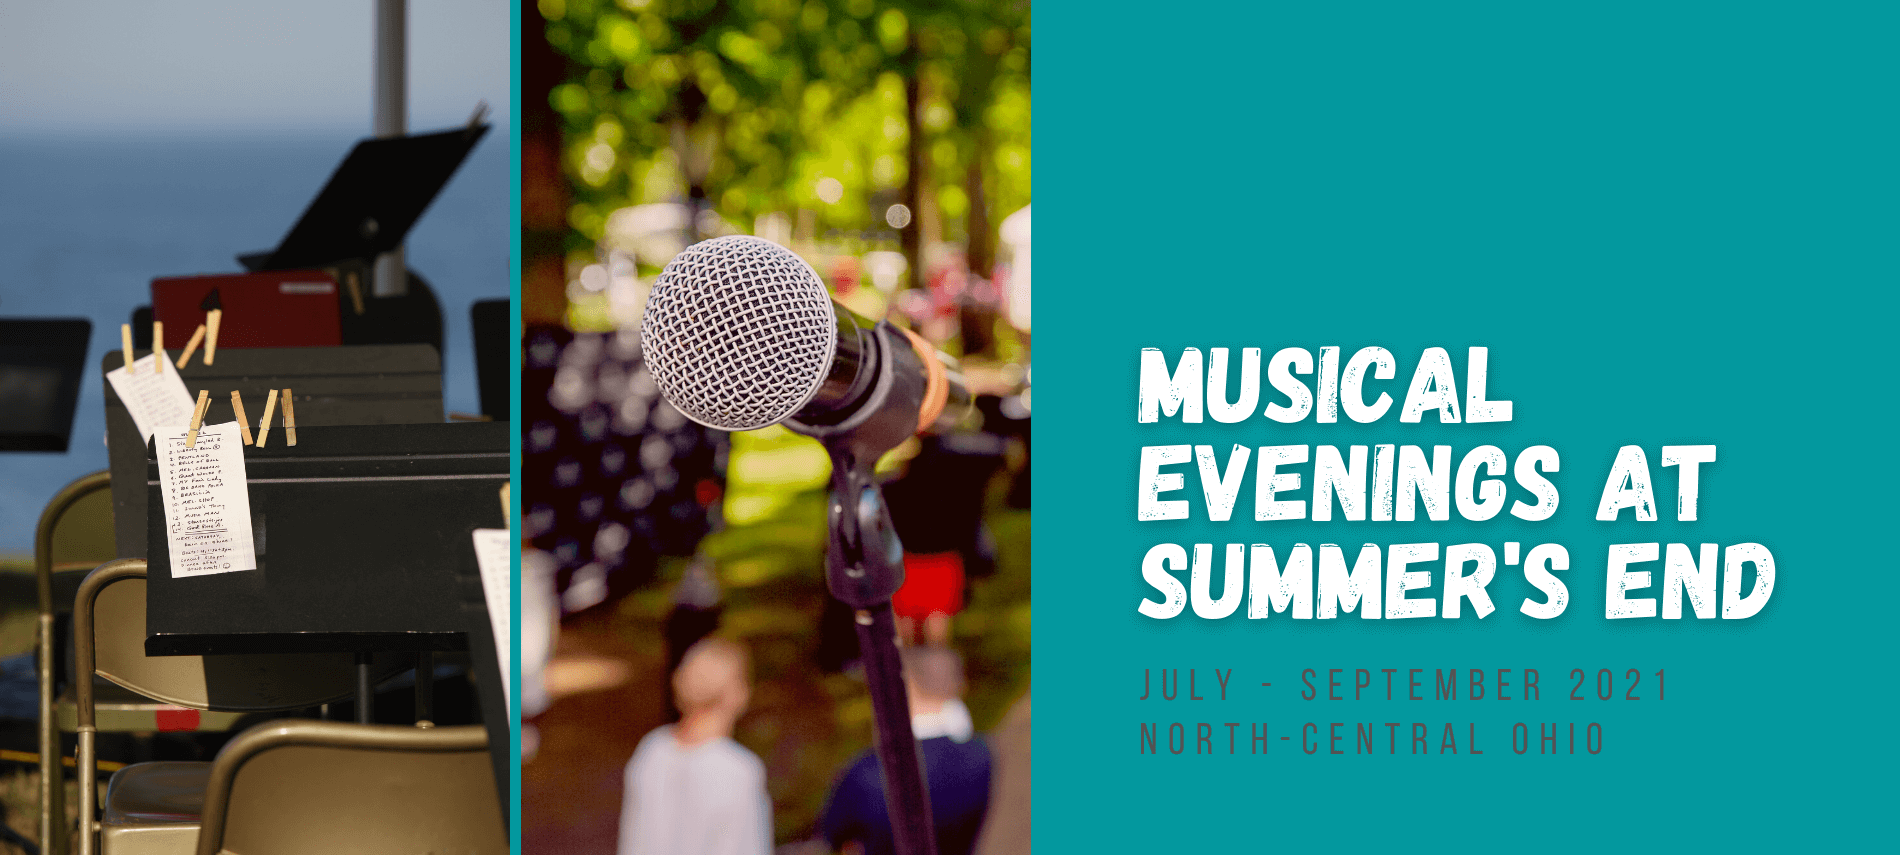 Musical Evenings at Summer's End - July-September, 2021 - with collage of outdoor park concerts